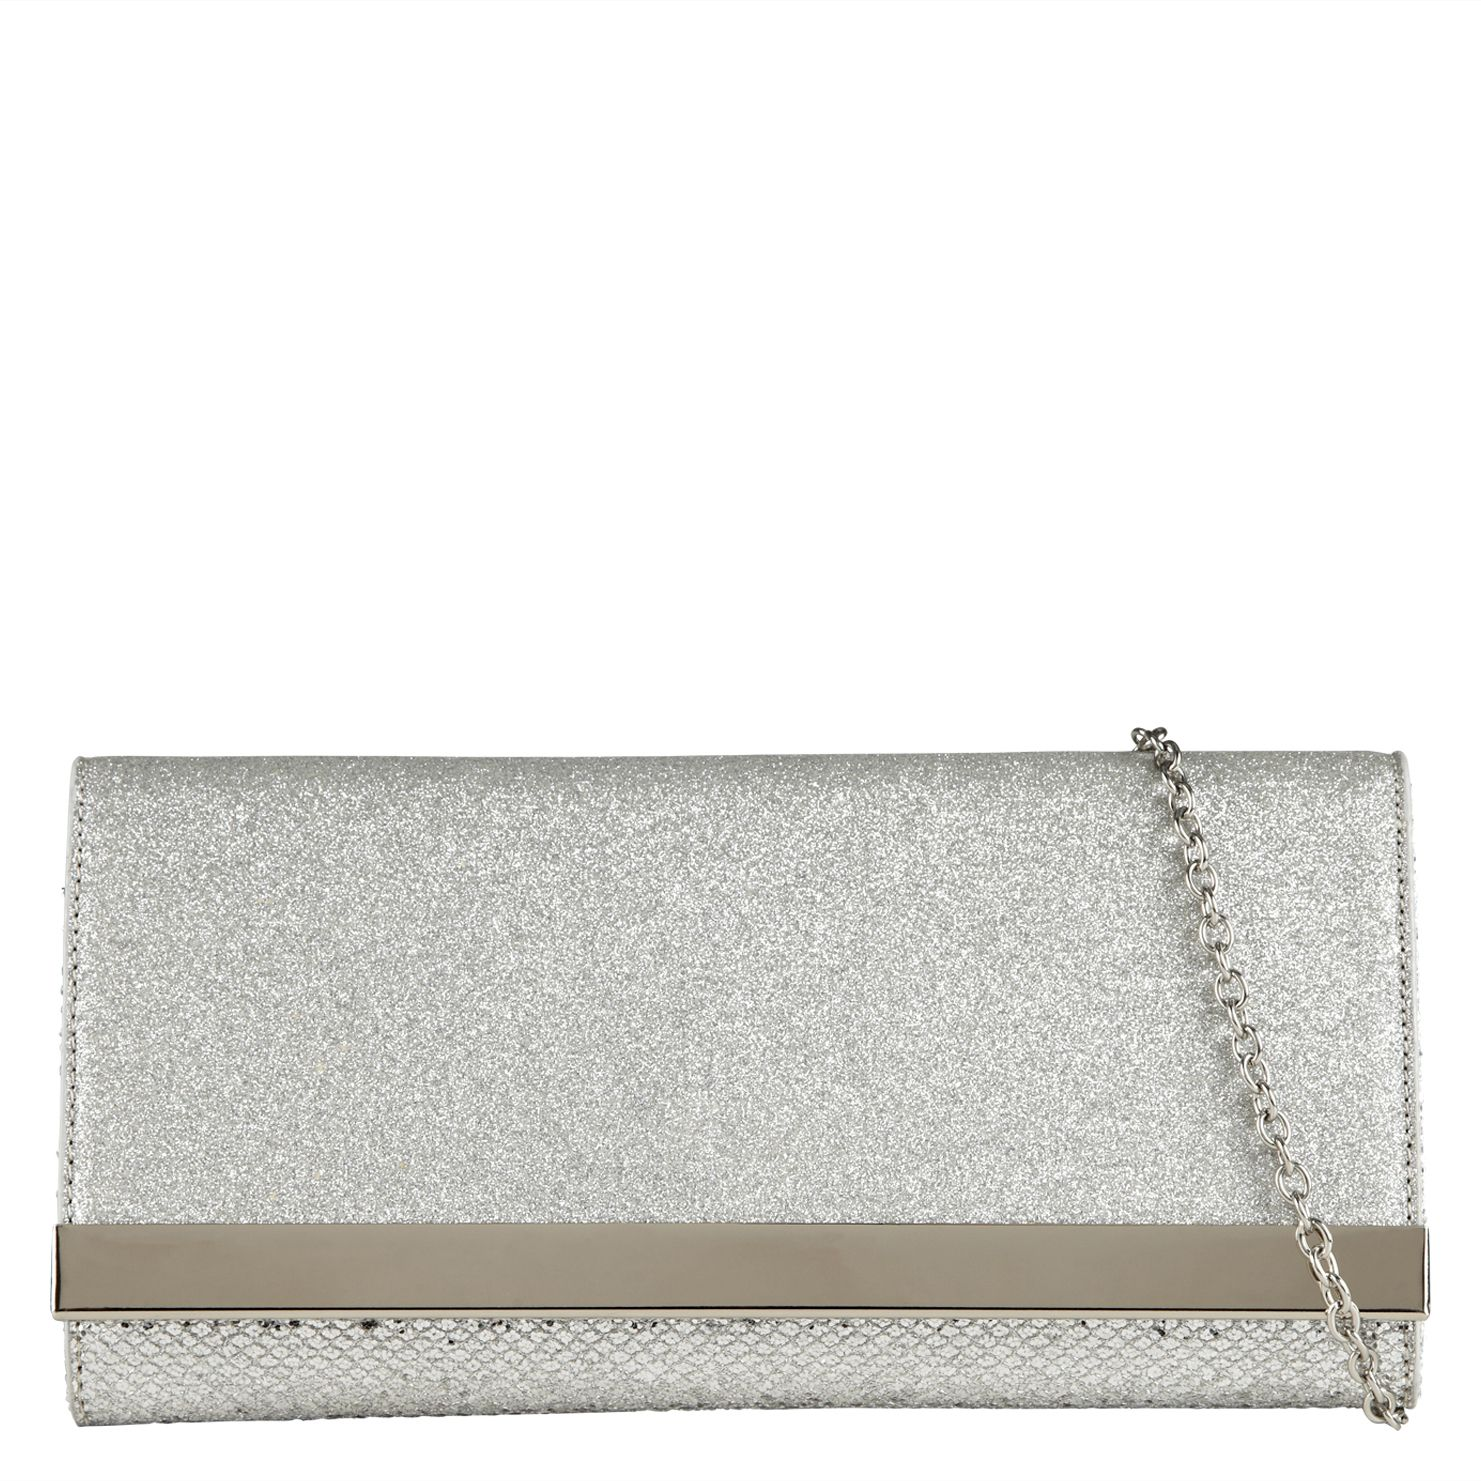 Husul metallic clutch bag